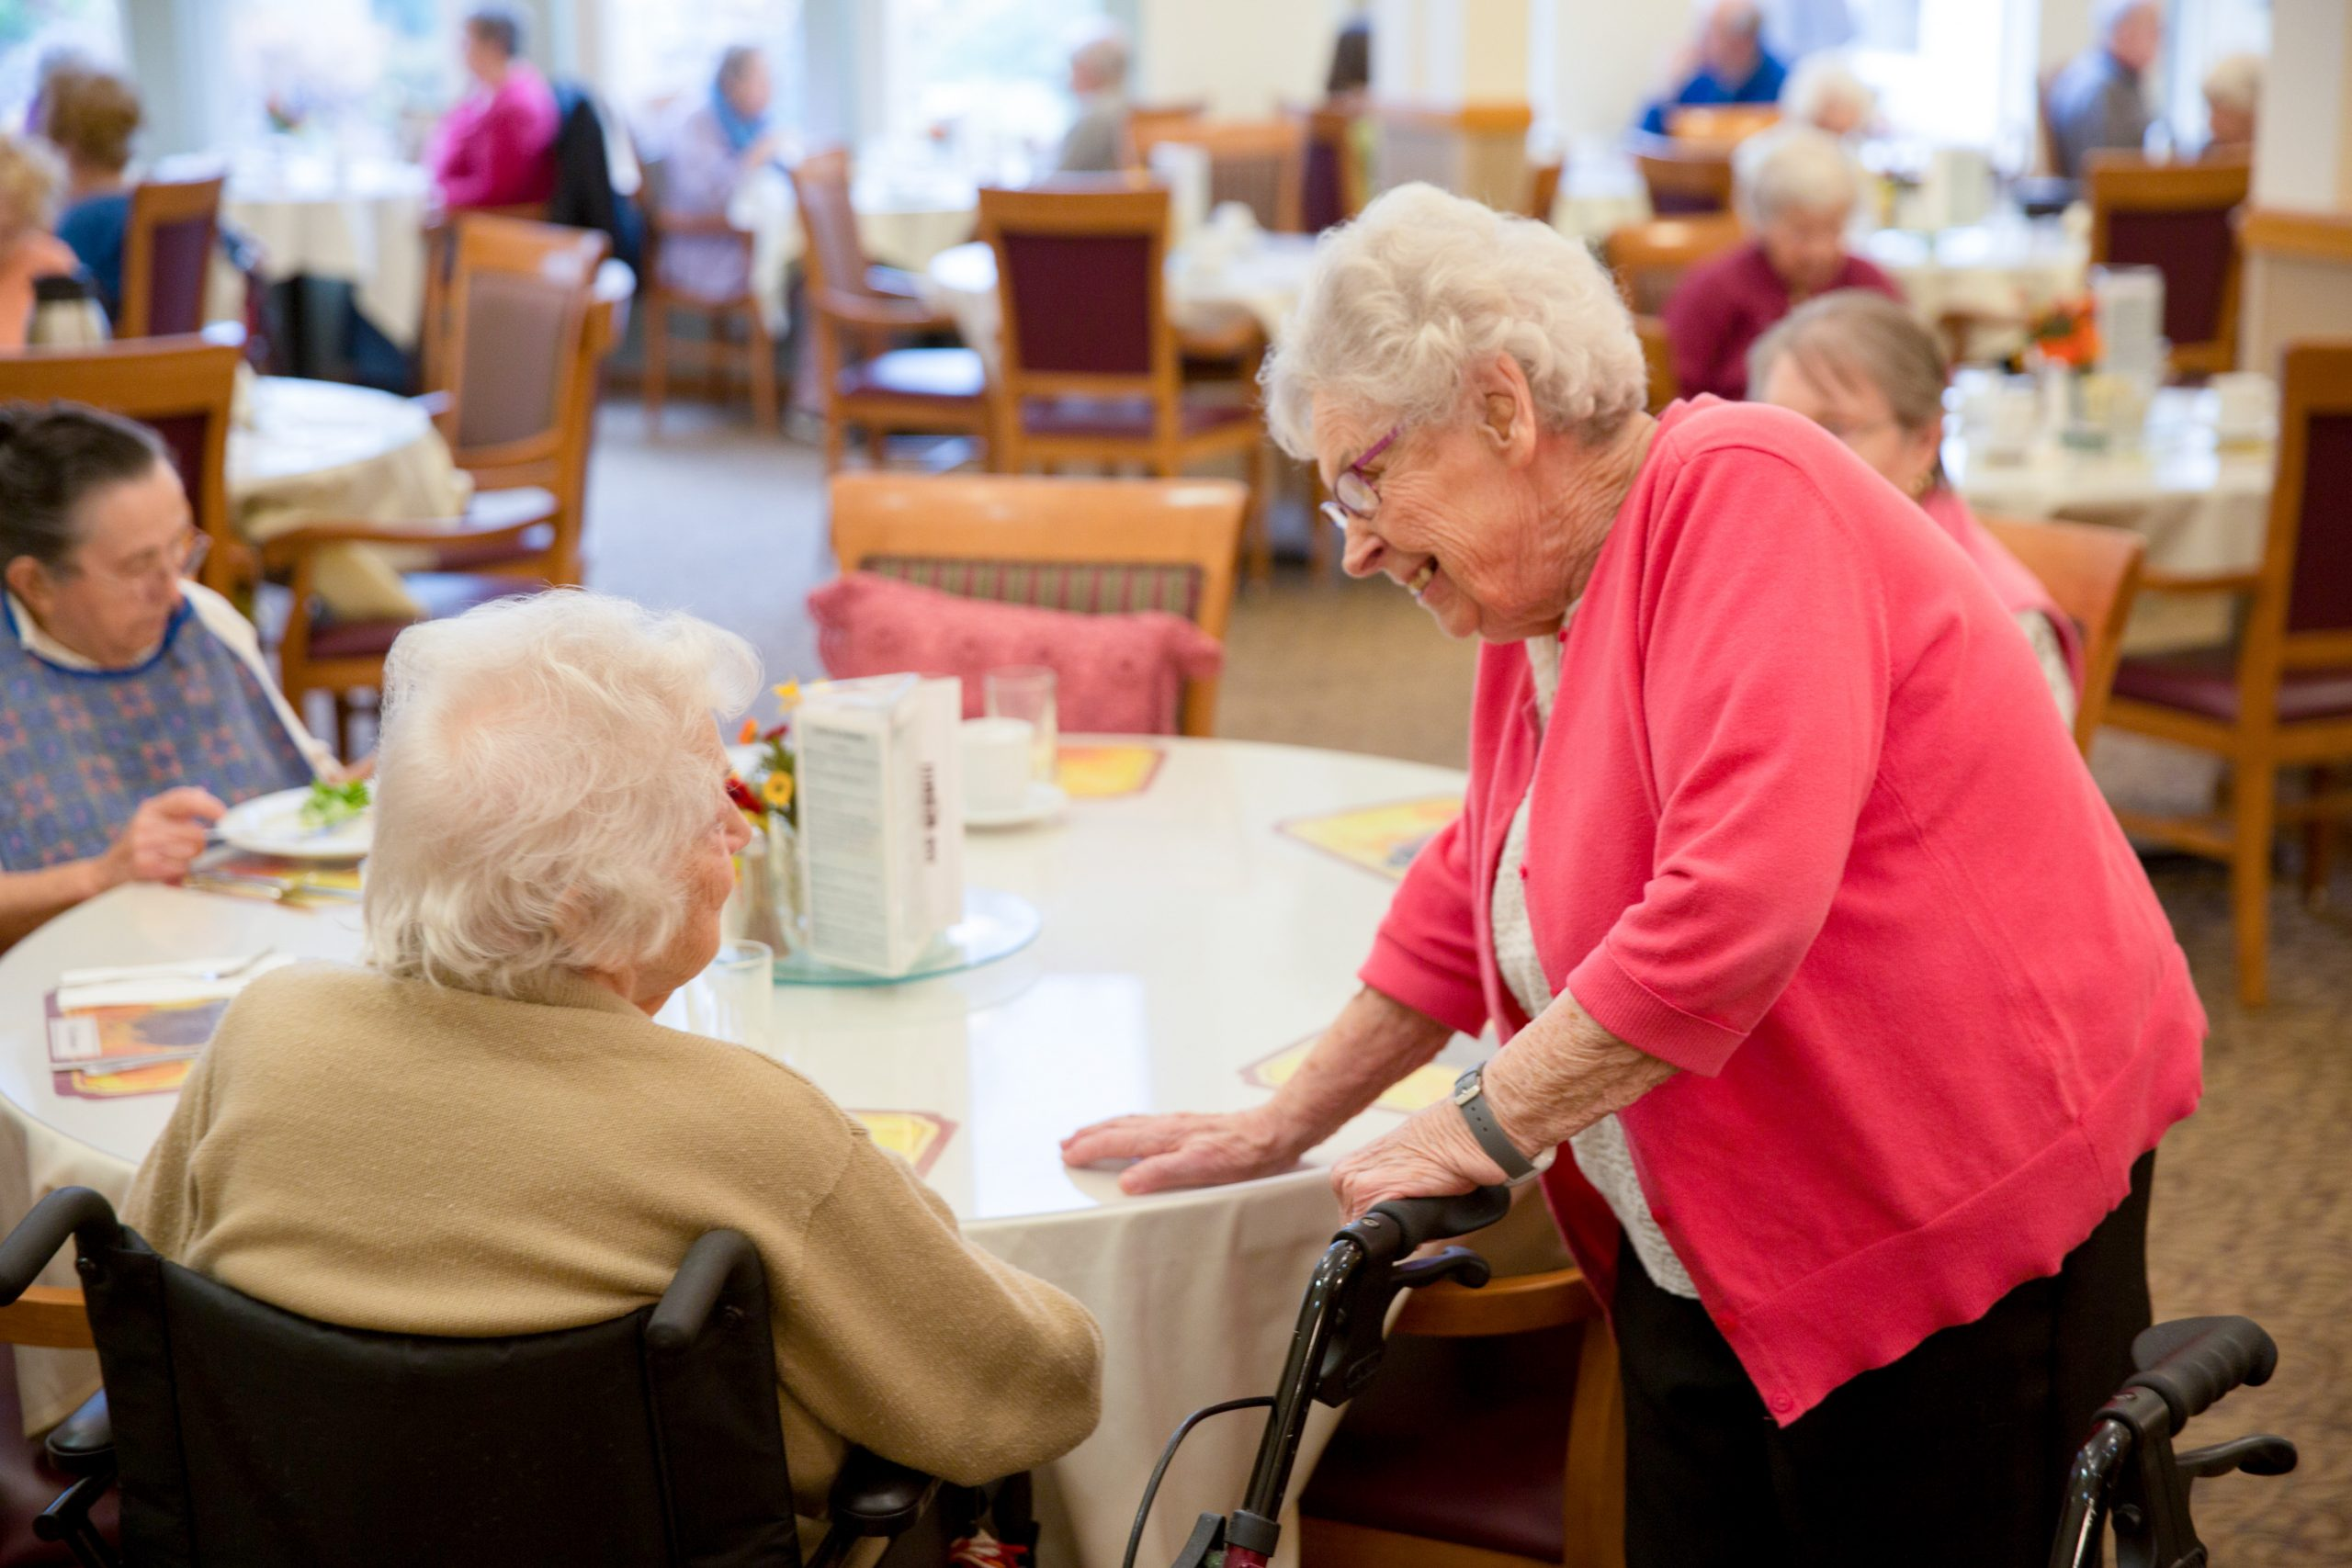 Learn all about the options at the BEST assisted living facilities in Beaverton at Hearthstone Senior Living.